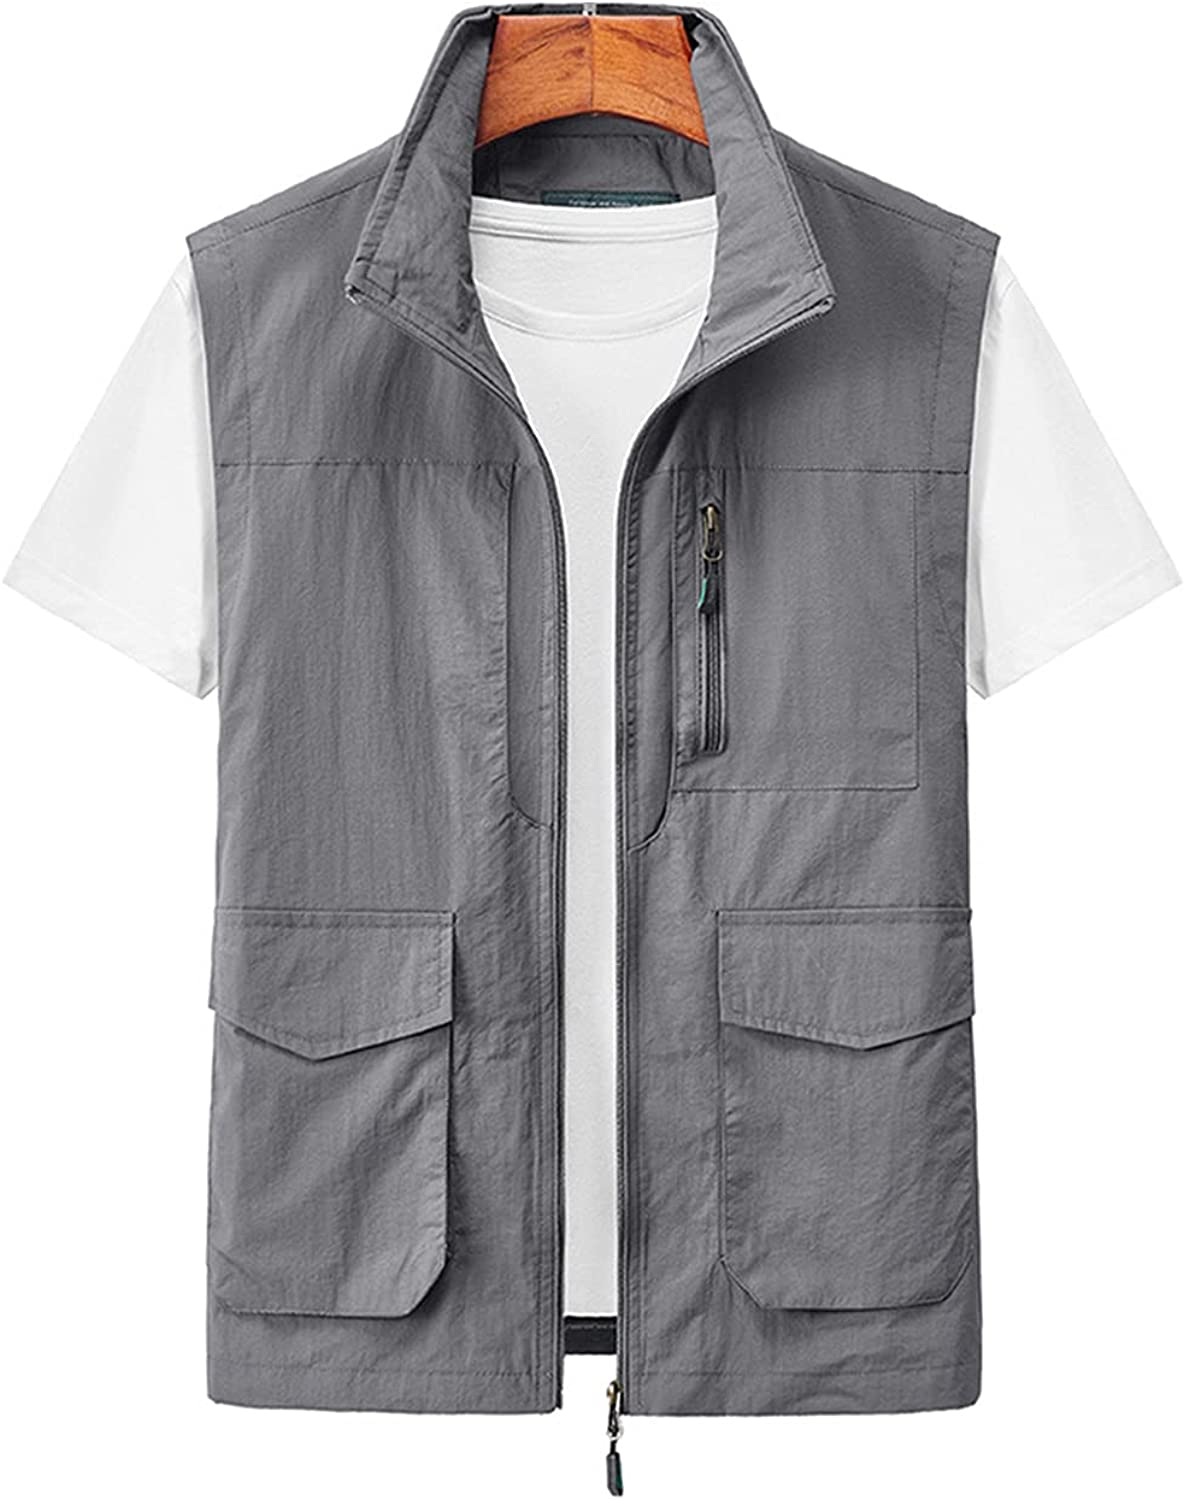 Arssm Men's Summer Casual Outdoor Lightweight Fishing Photography Vest with Pockets